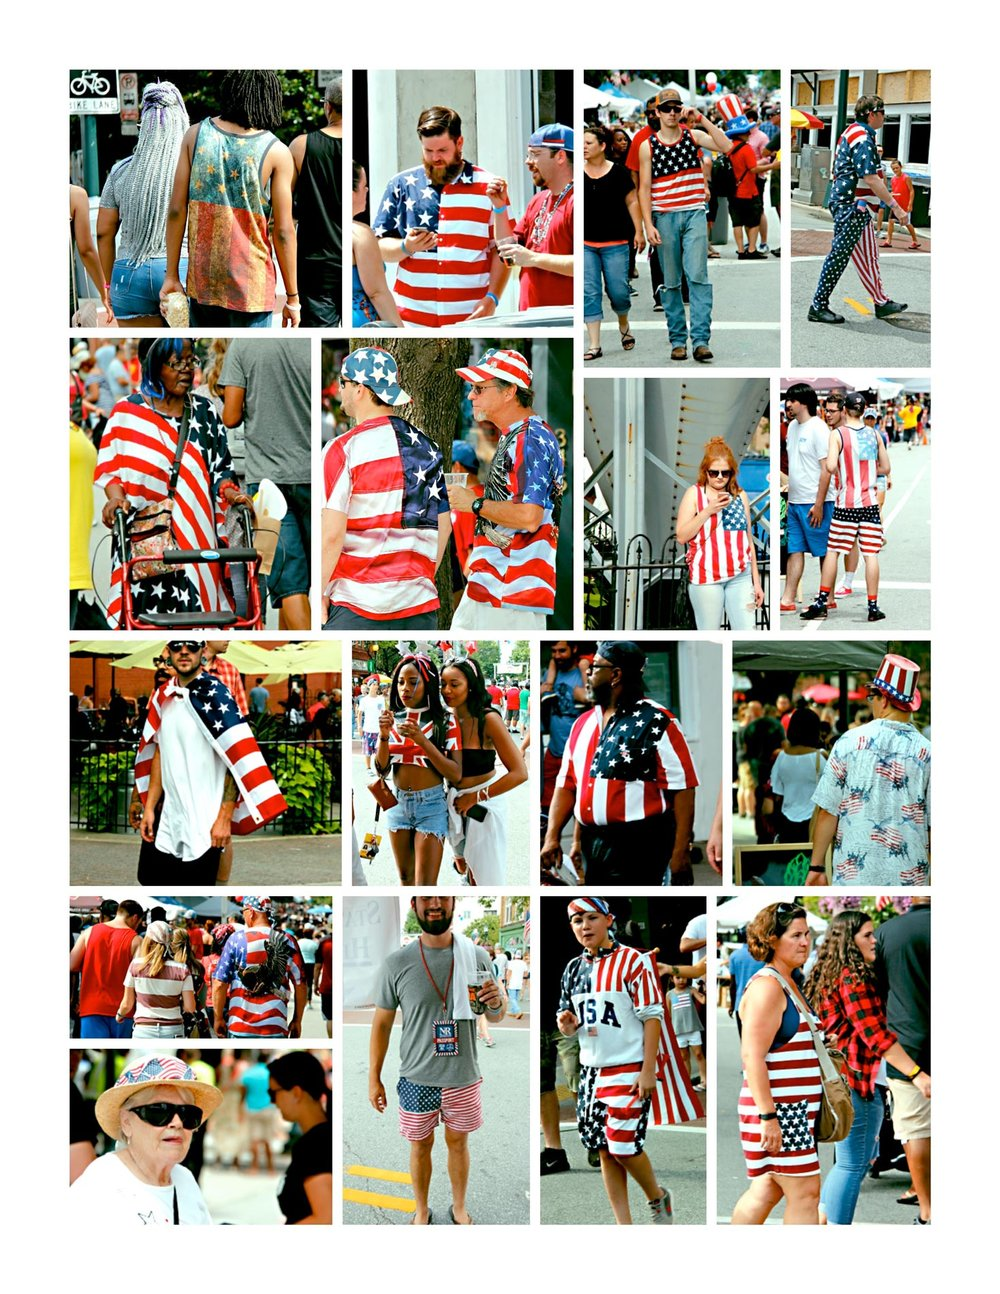 Greensboro-July-4-Wearing-the-Flag.jpg